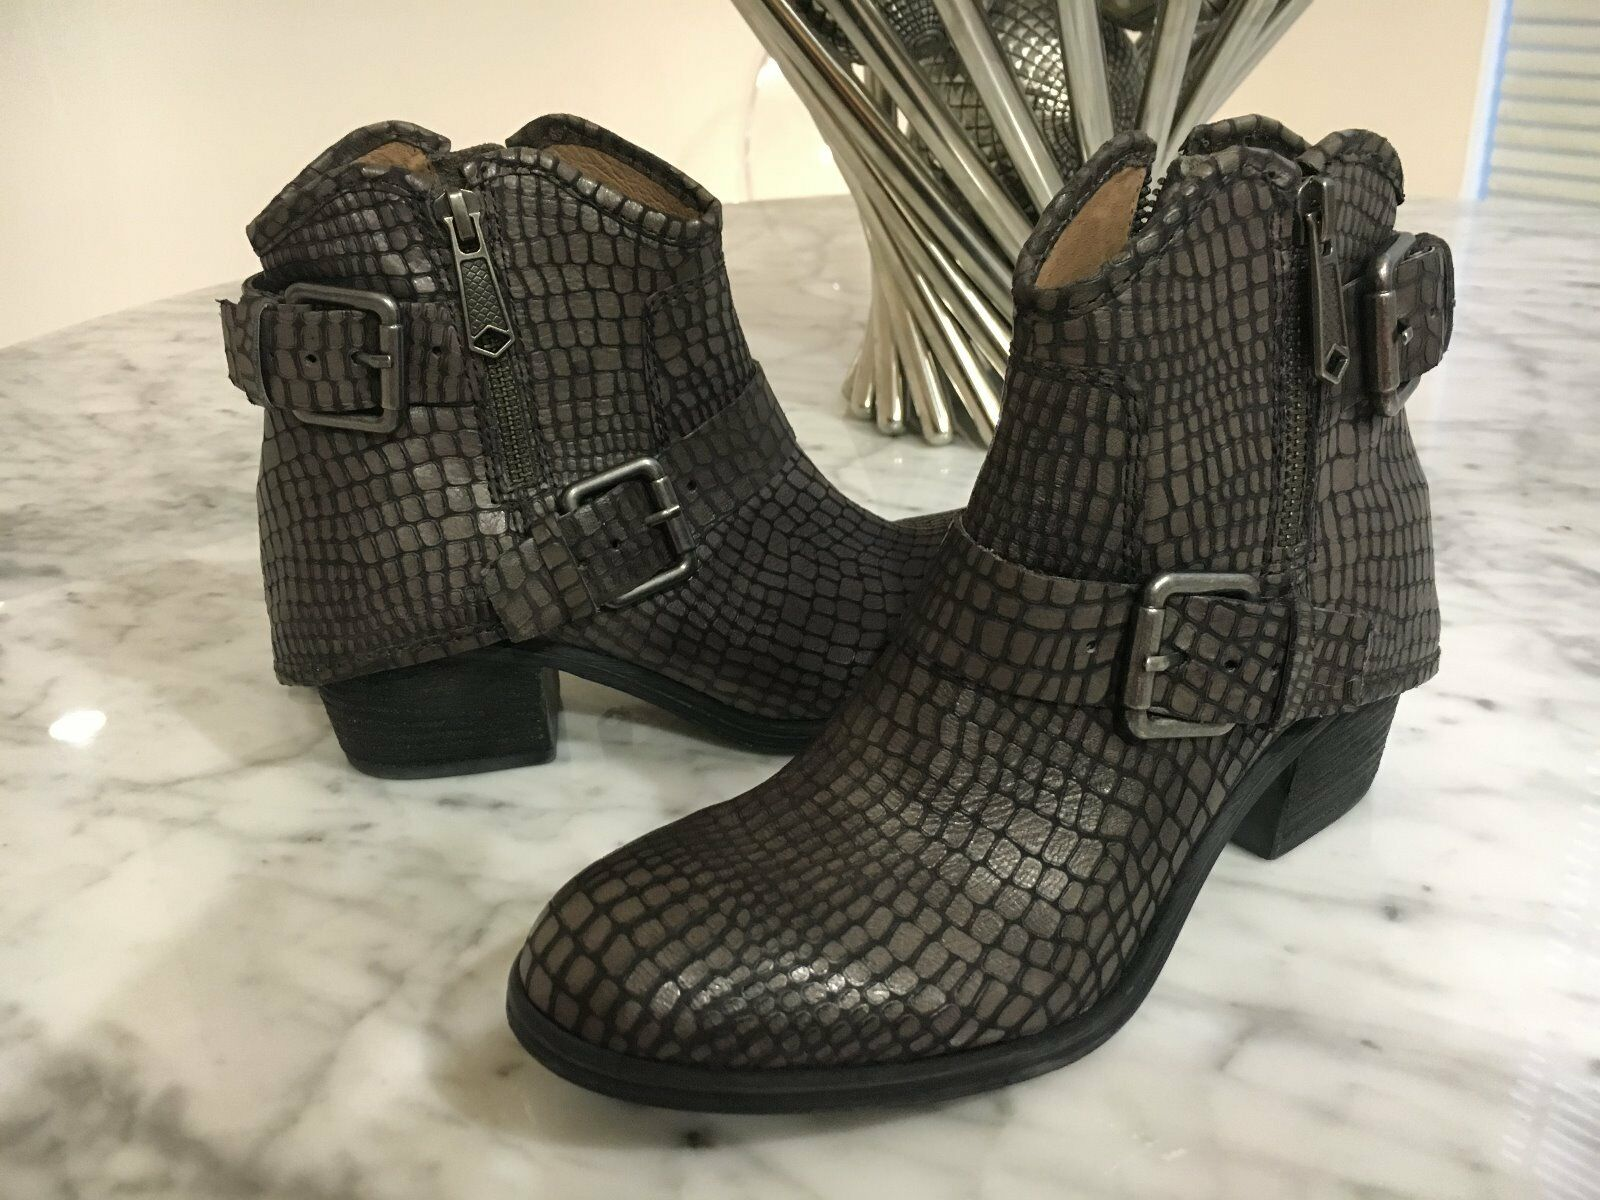 NEW Donald J Pliner Brown Dalis Vintage Python Leather Ankle Boots US 5